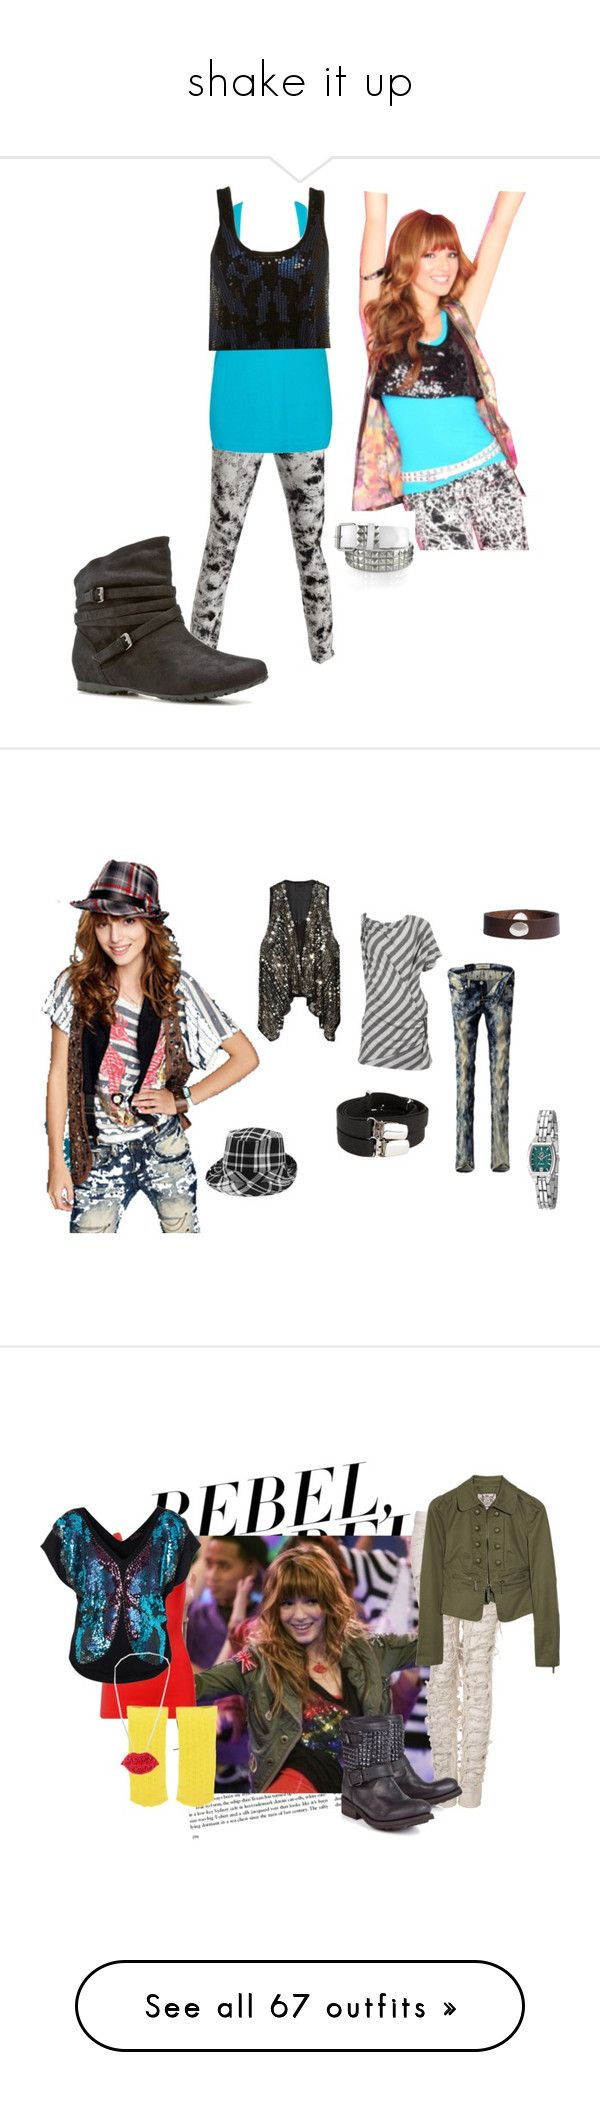 """""""shake it up"""" by amandawoelck ❤ liked on Polyvore featuring James Jeans, Forever 21, Topshop, CeCe, Report, Disney, Anna Sui, Metropark, Othermix and BKE"""